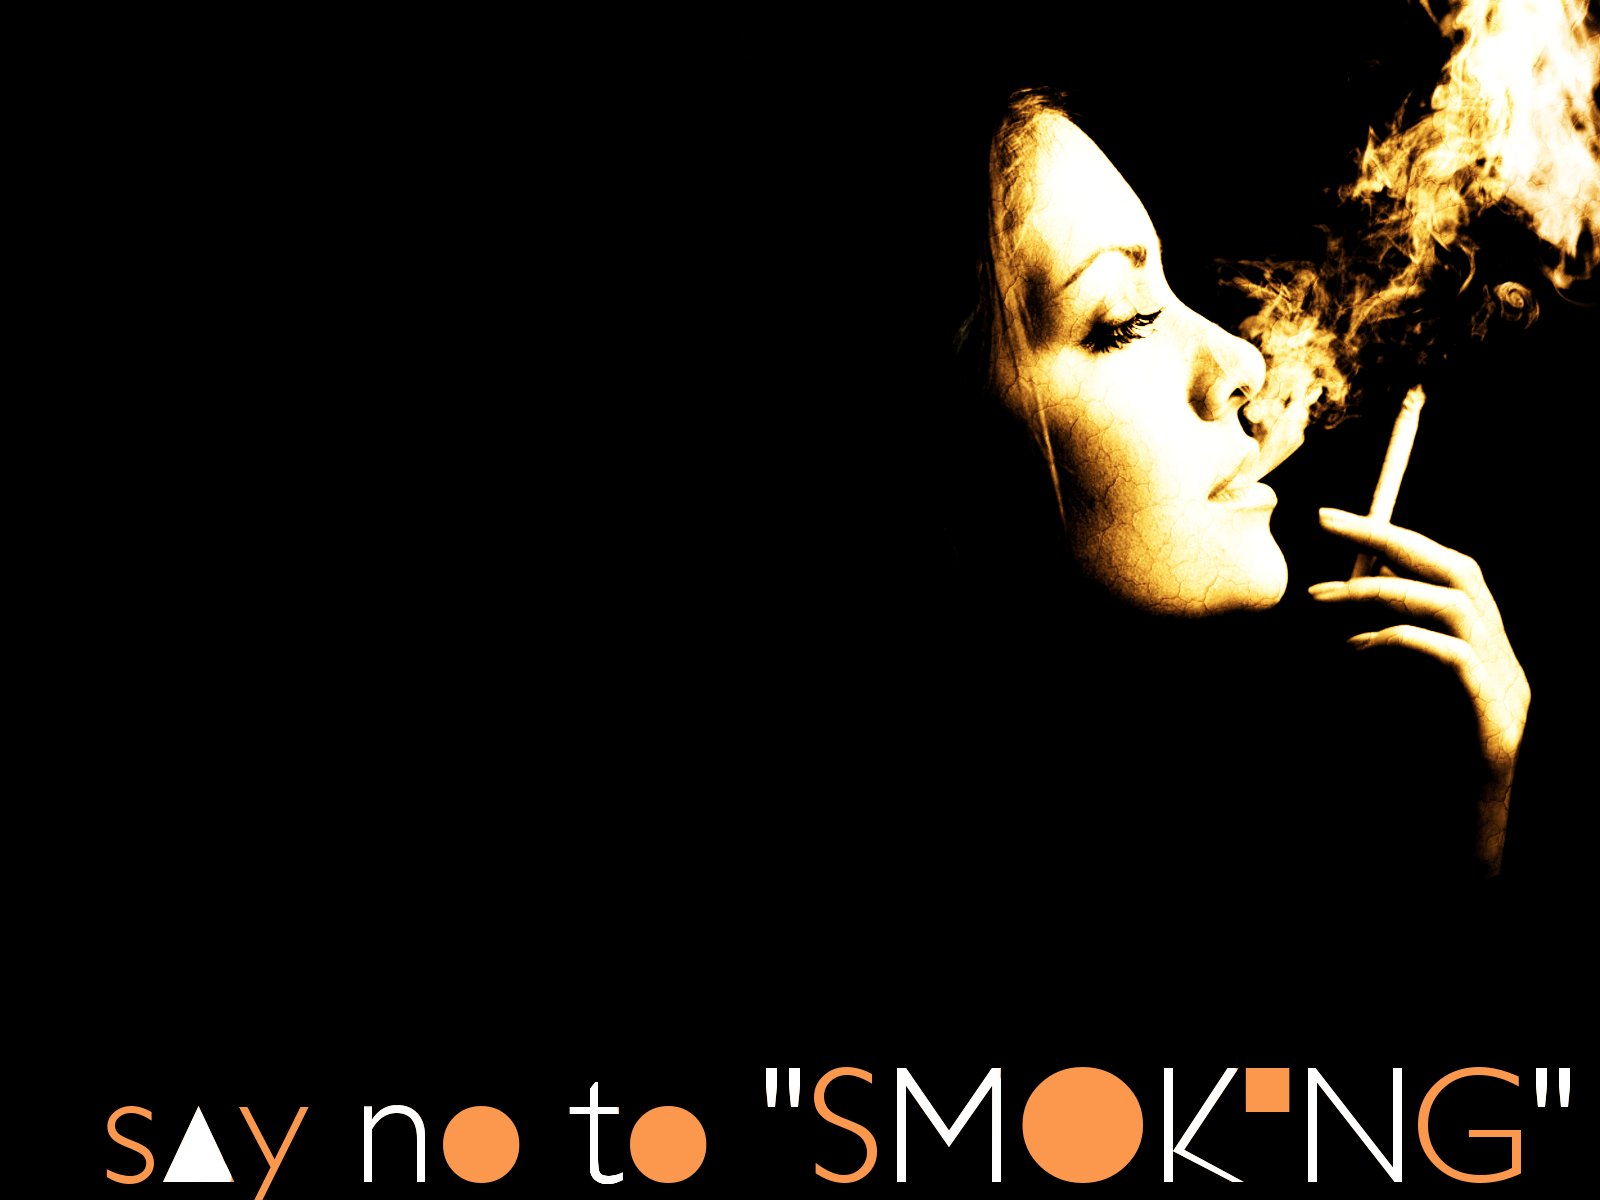 Best 57 Smoking Wallpapers on HipWallpaper Smoking Wallpapers 1600x1200